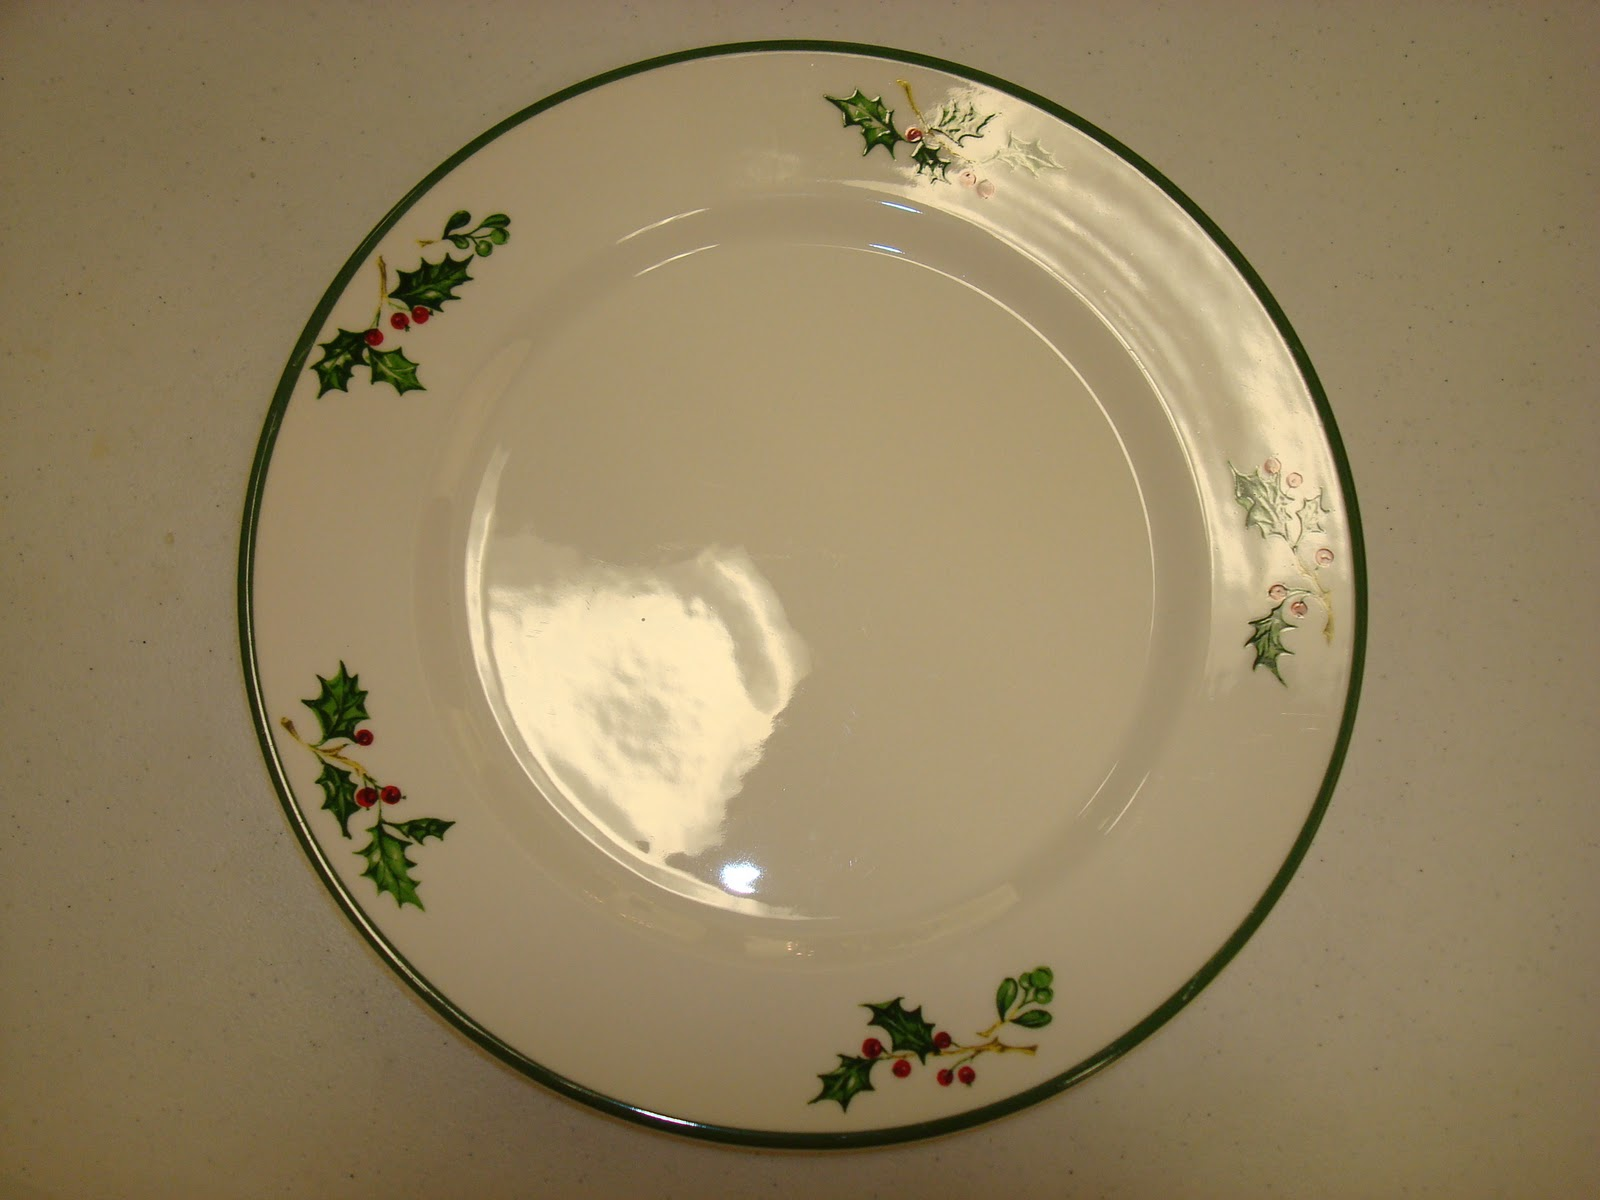 IC Church Auction - 2010: Christmas Plates (8)